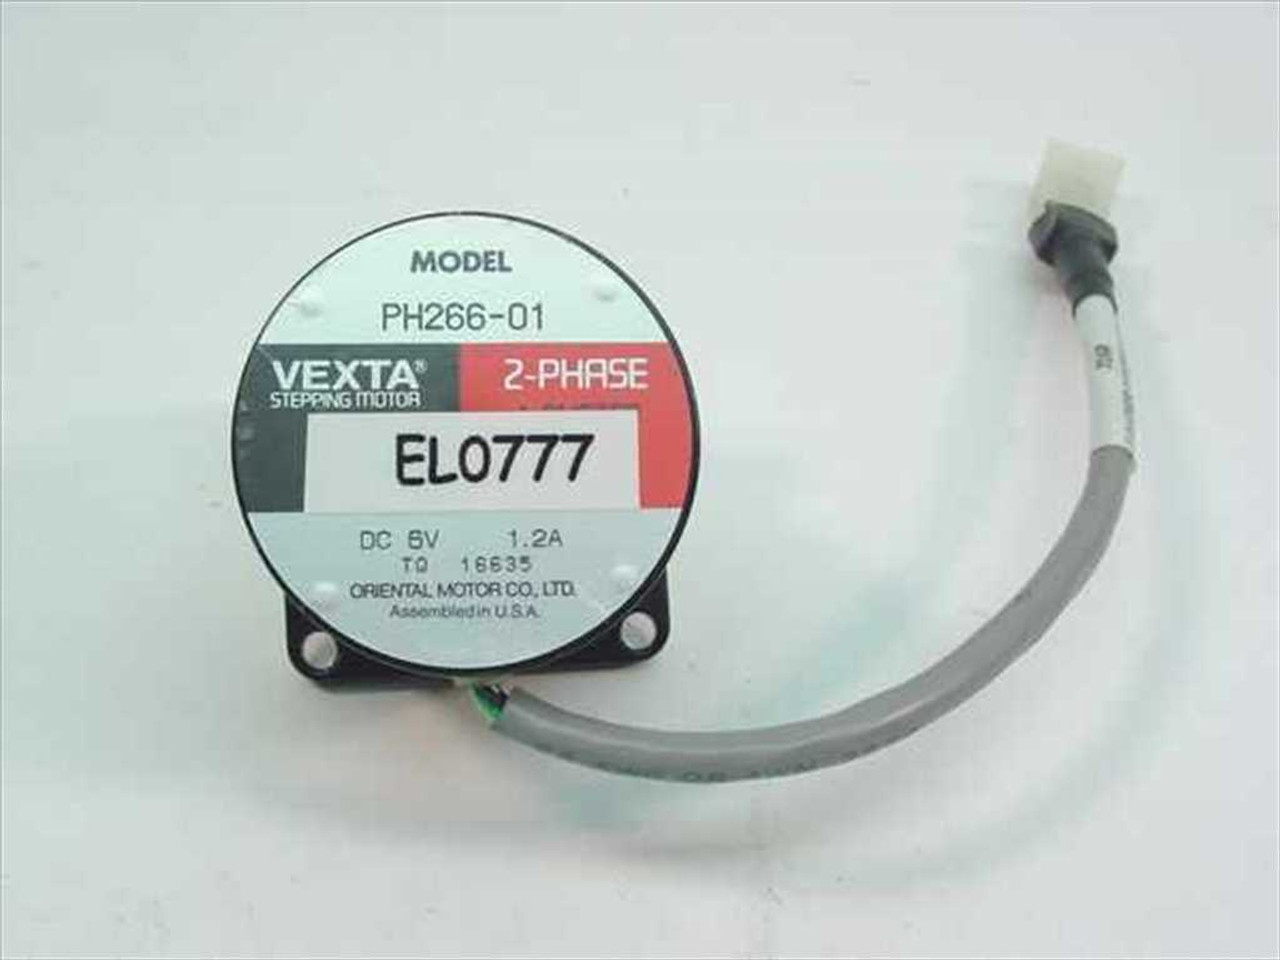 Vexta Ph266 01 Stepper Motor 2 Phase Oriental Motor Co